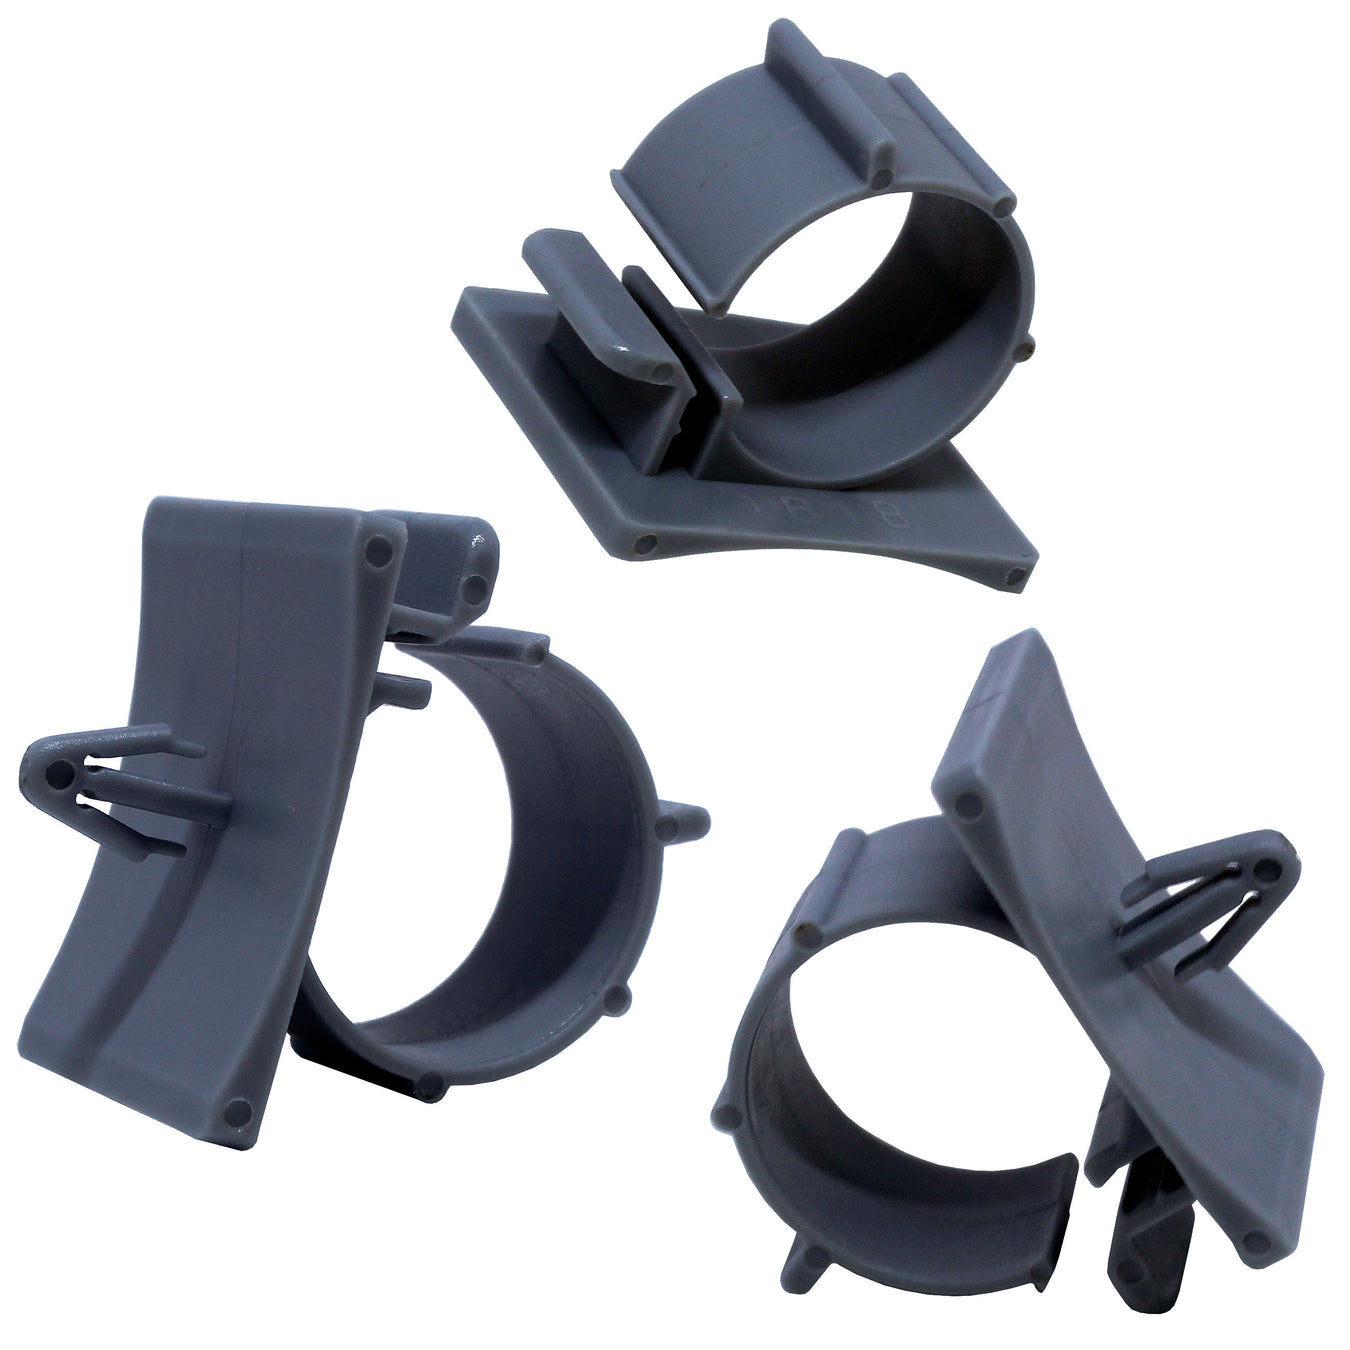 Push Mount Clamps